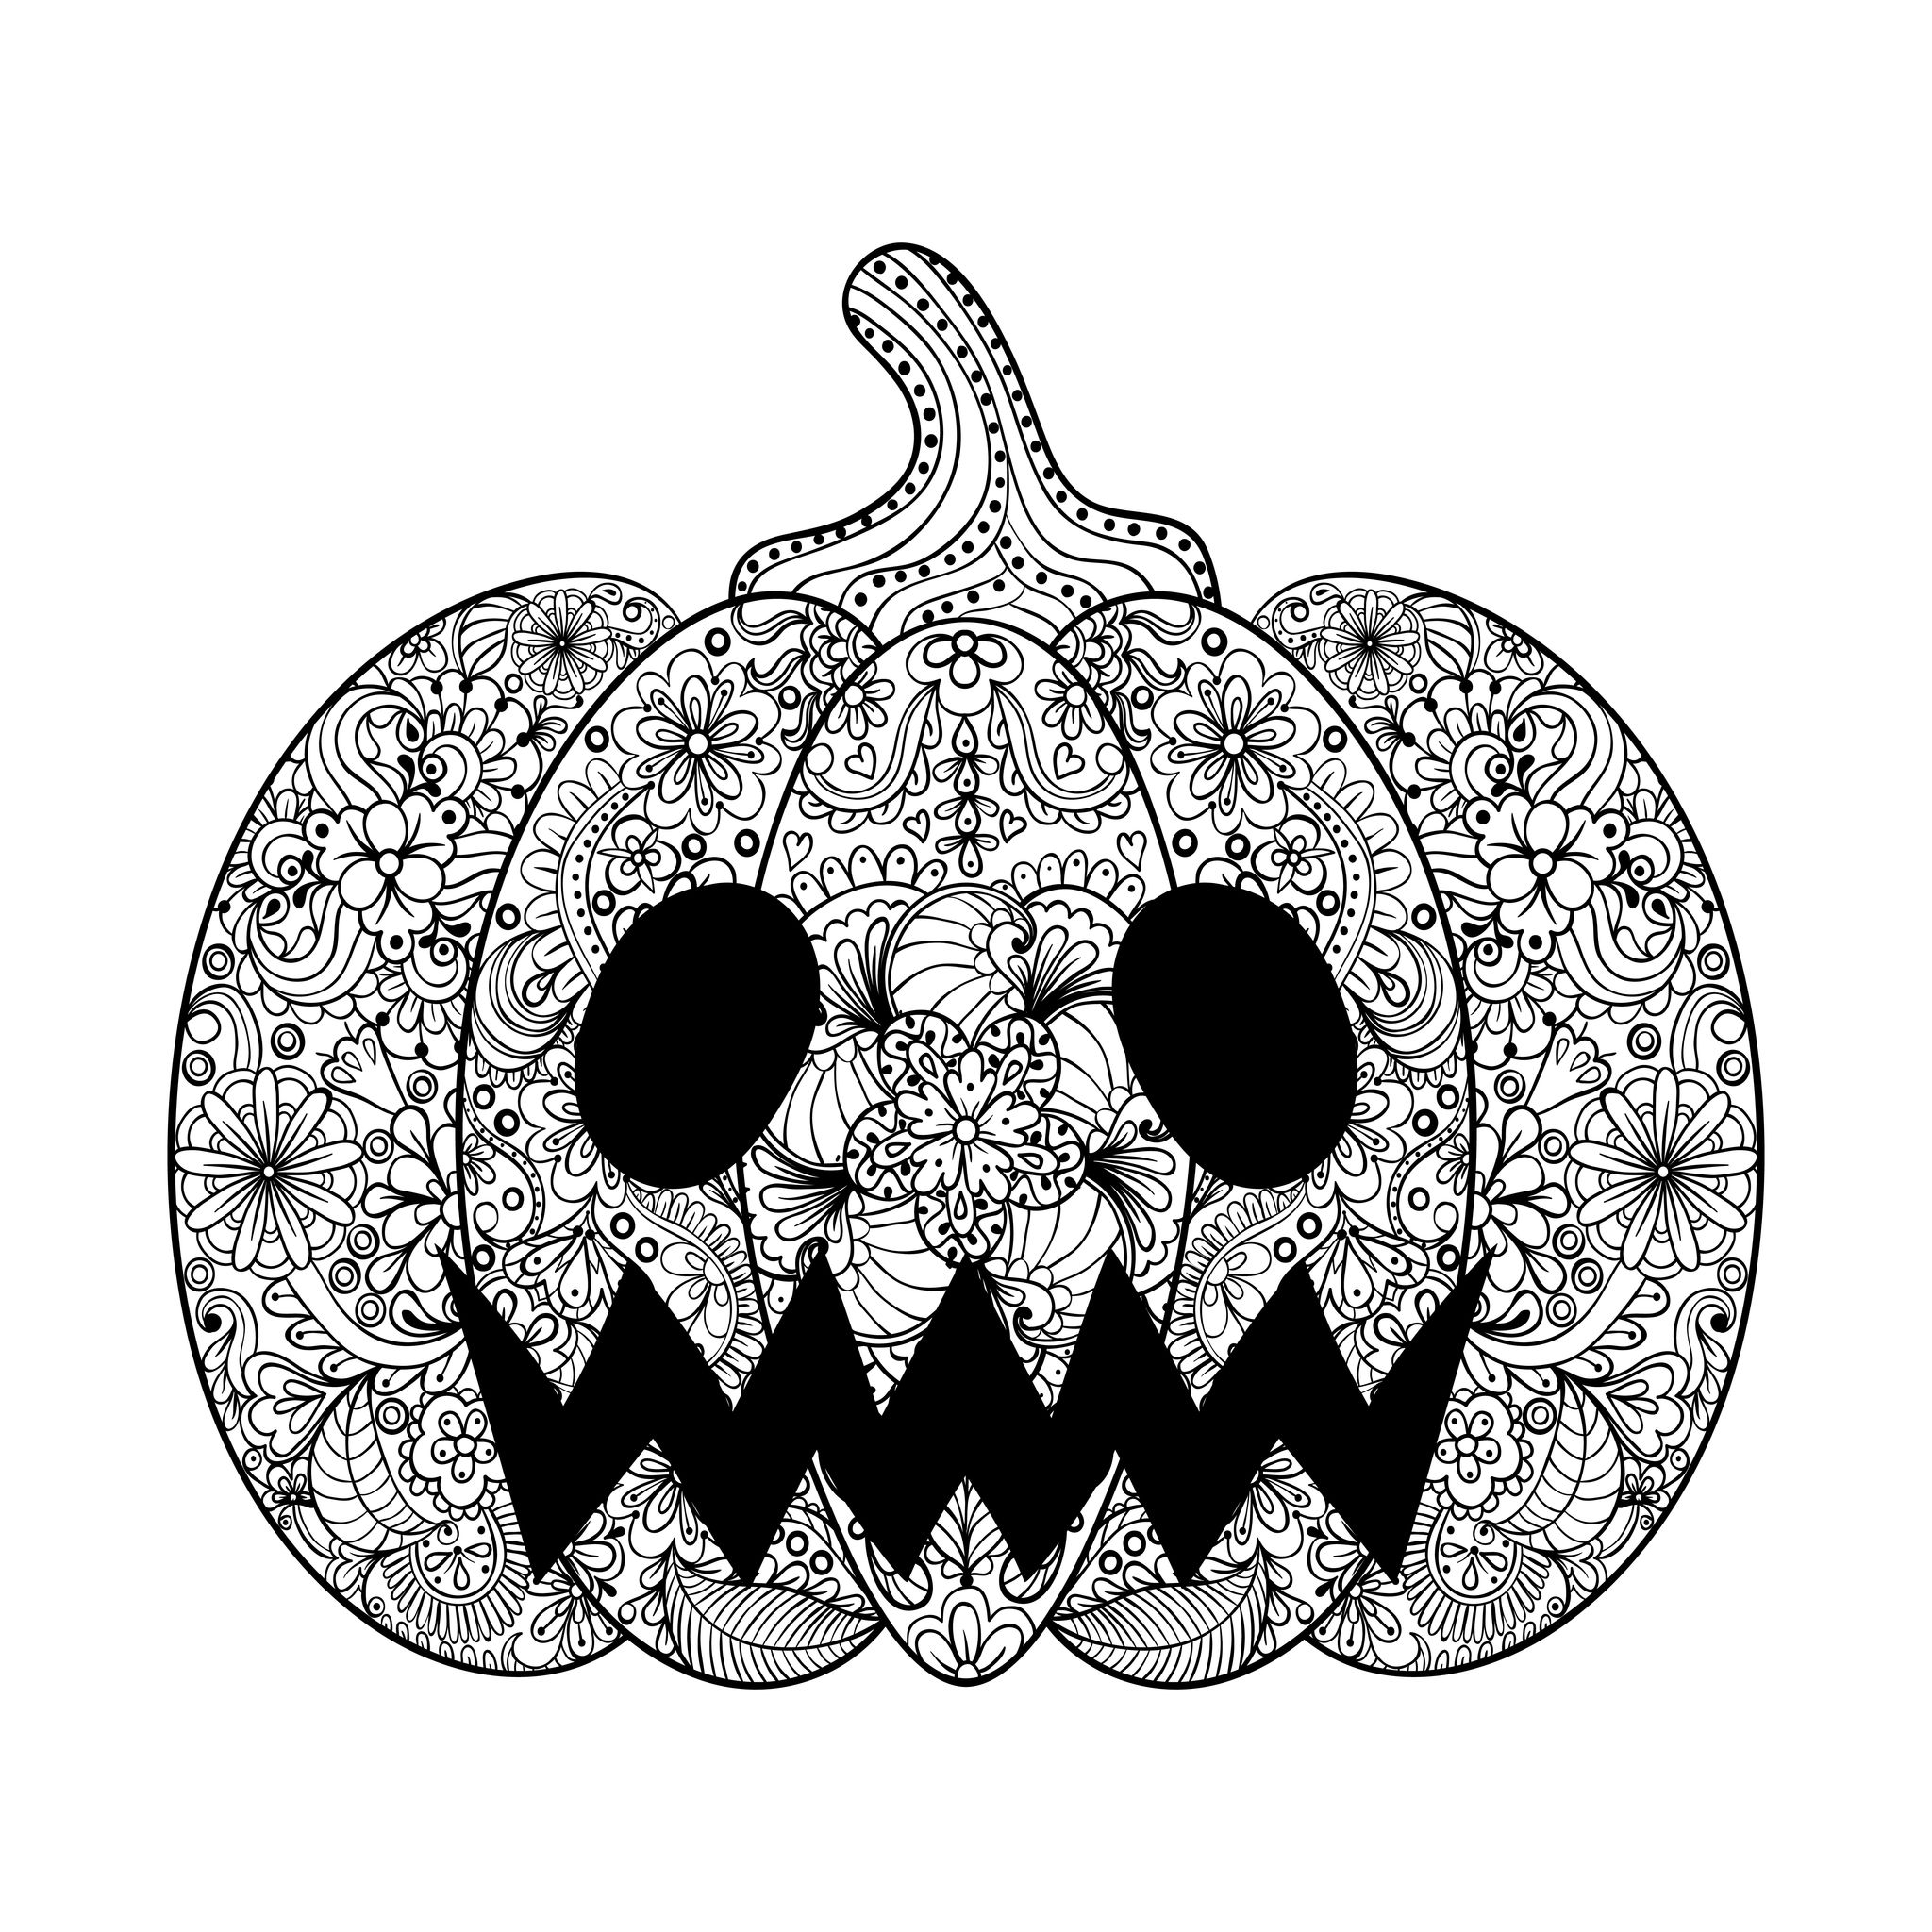 Halloween Pumpkin Coloring Pages Printables Halloween Scary Pumpkin Halloween Adult Coloring Pages